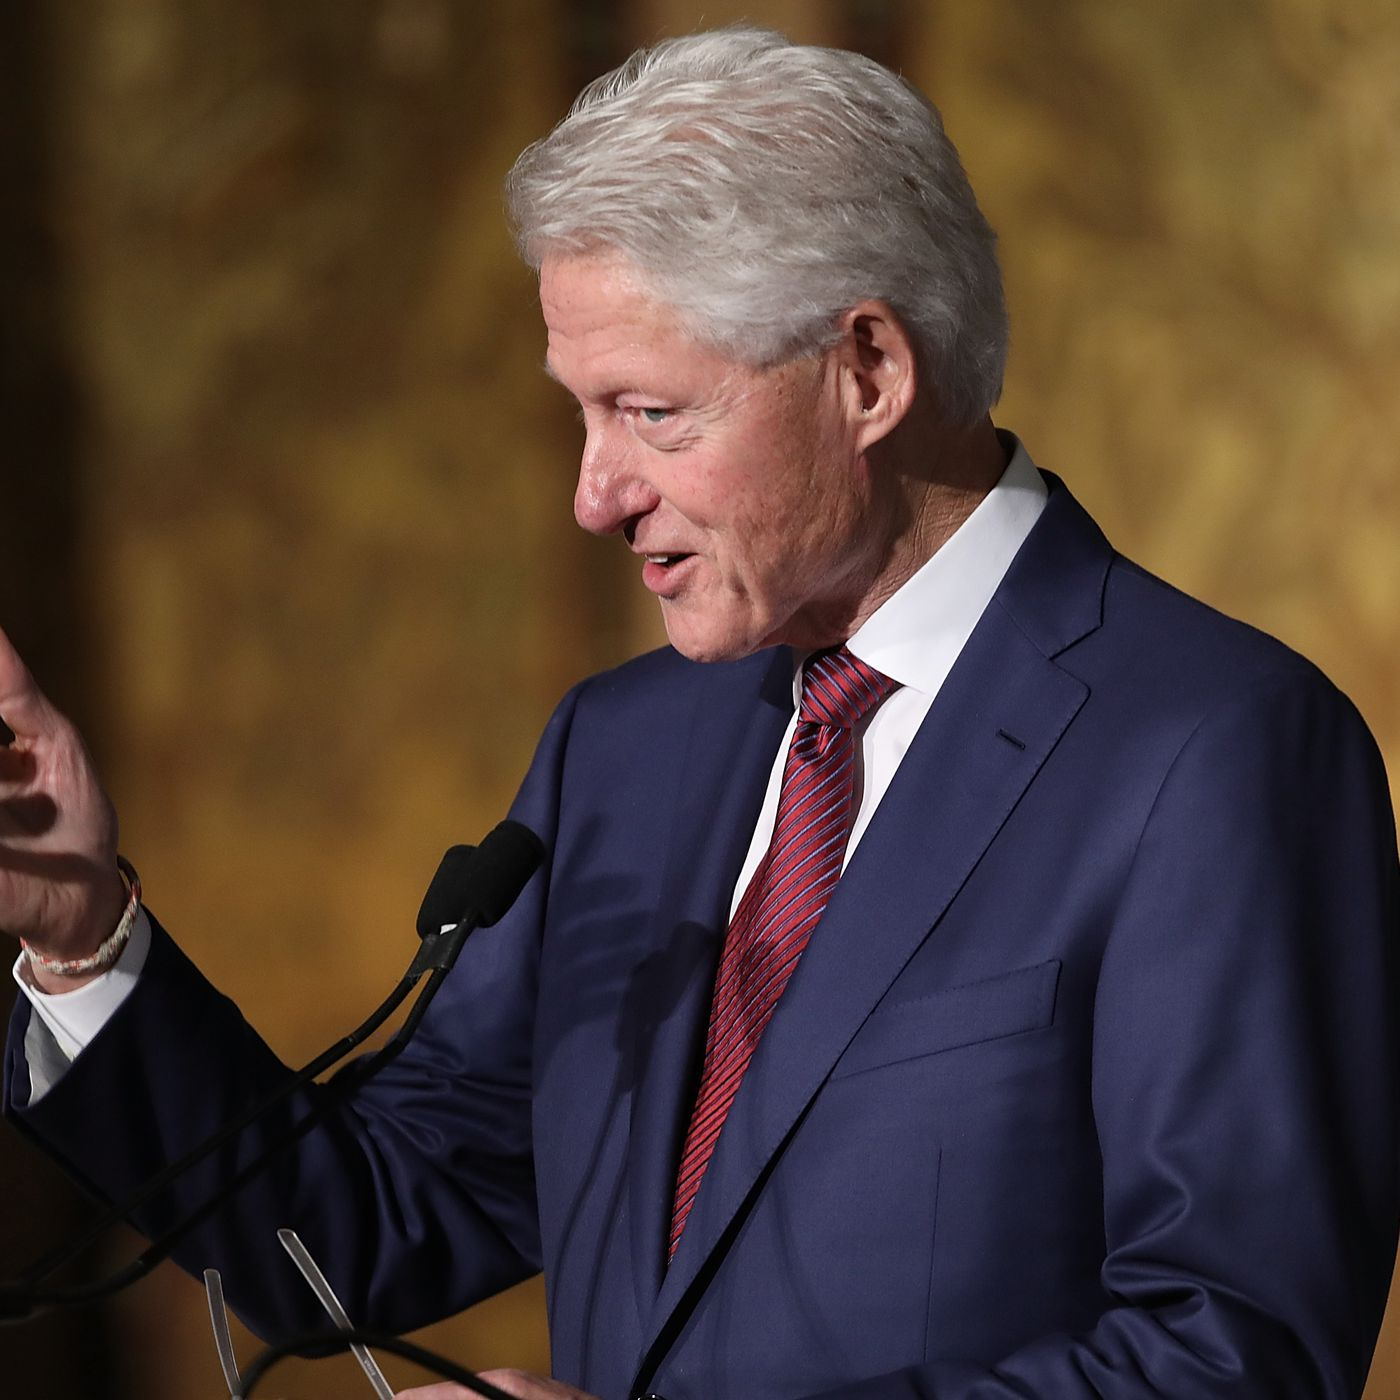 One Reason Liberals Let Bill Clinton Off The Hook In 90s They Strange Nostalgia For Future How To Tie A Were Afraid Of Looking Like Prudes Vox